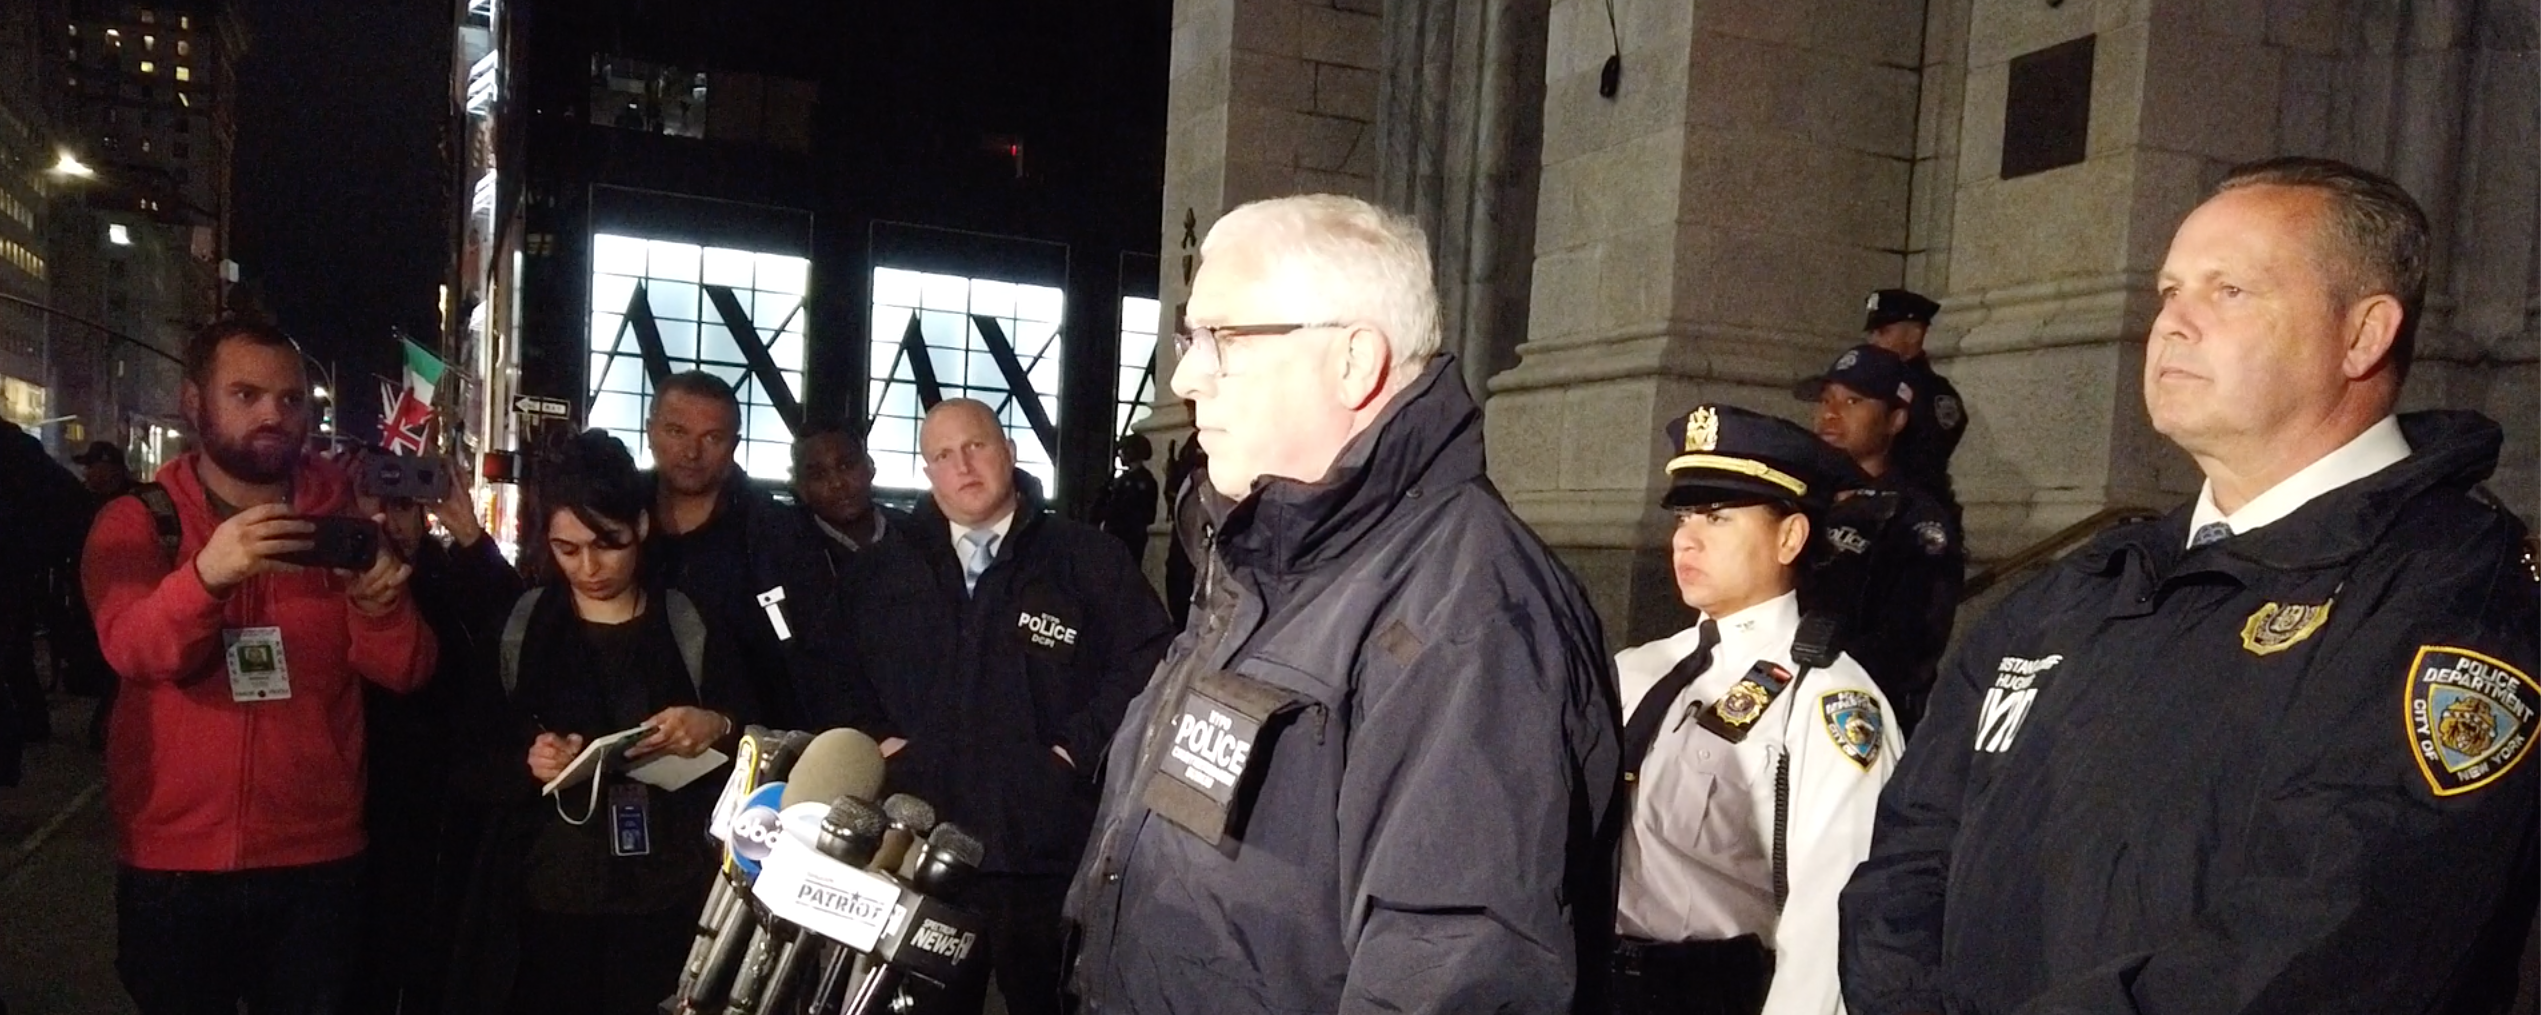 NYPD Deputy Commissioner of counterintelligence and counterterrorism John Miller talks to reporters (Photo Credit: Kerry Picket/The Daily Caller)